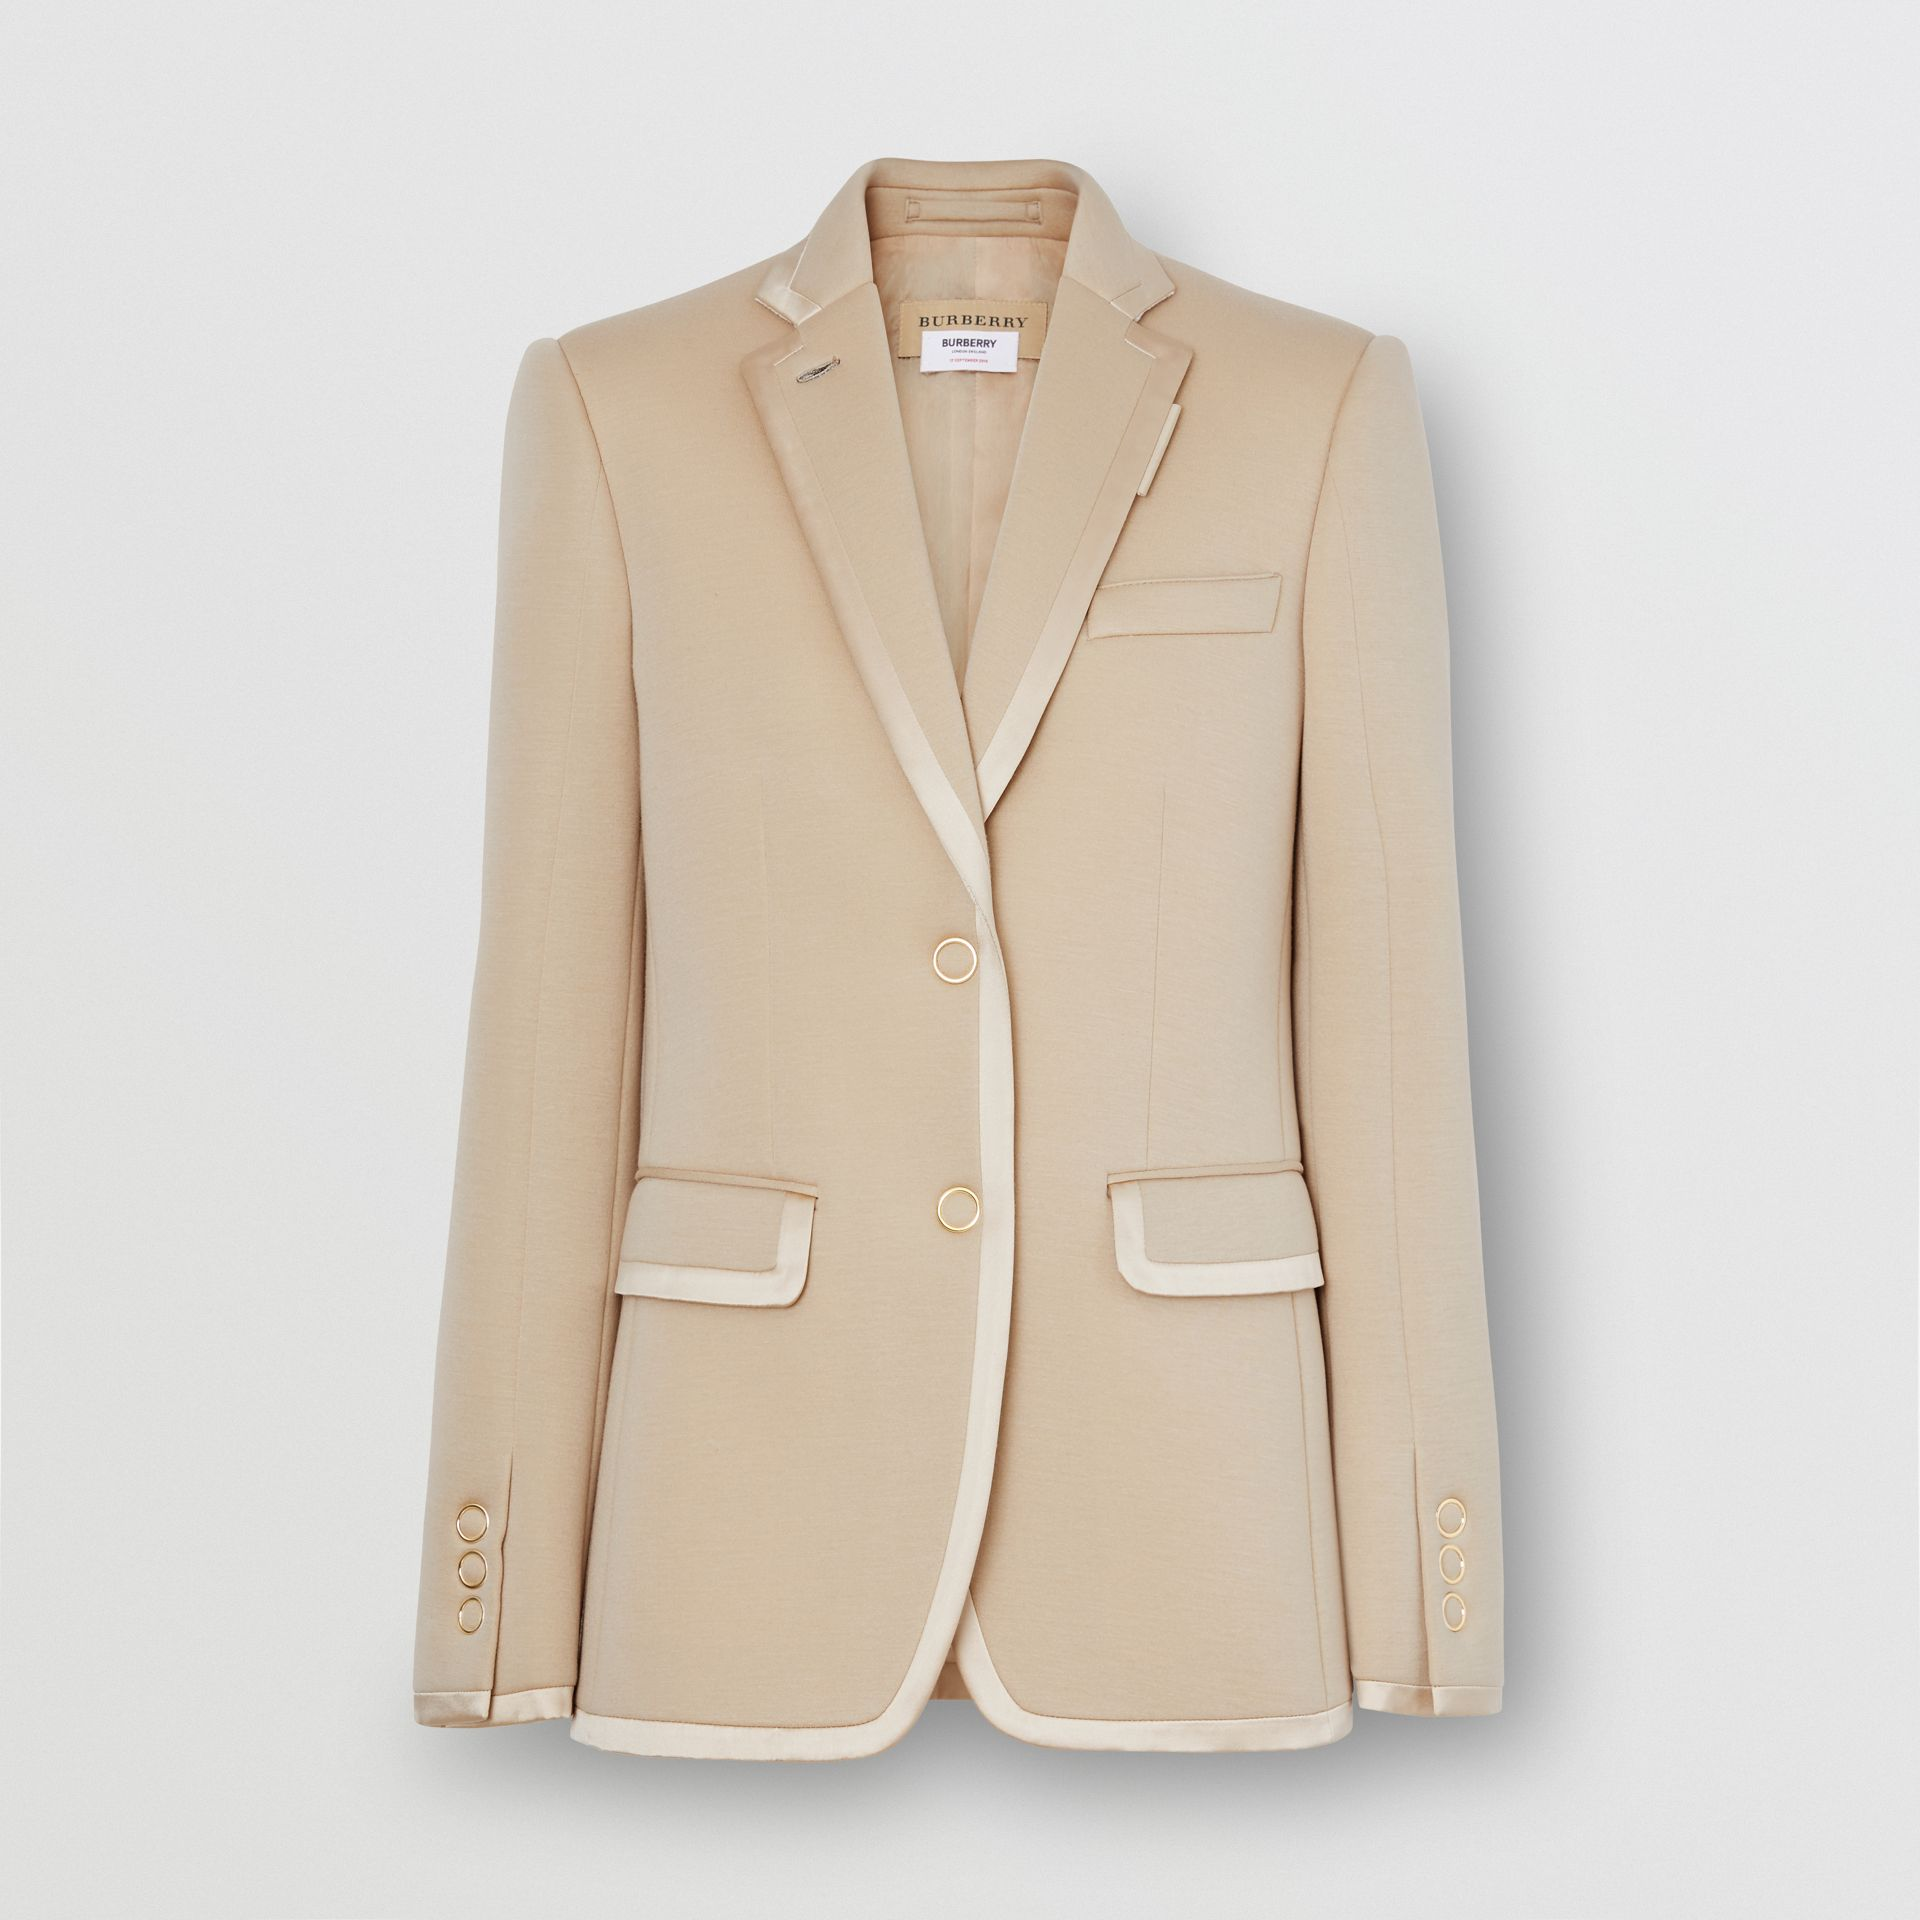 Silk Trim Neoprene Blazer in Teddy Beige - Women | Burberry United States - gallery image 3